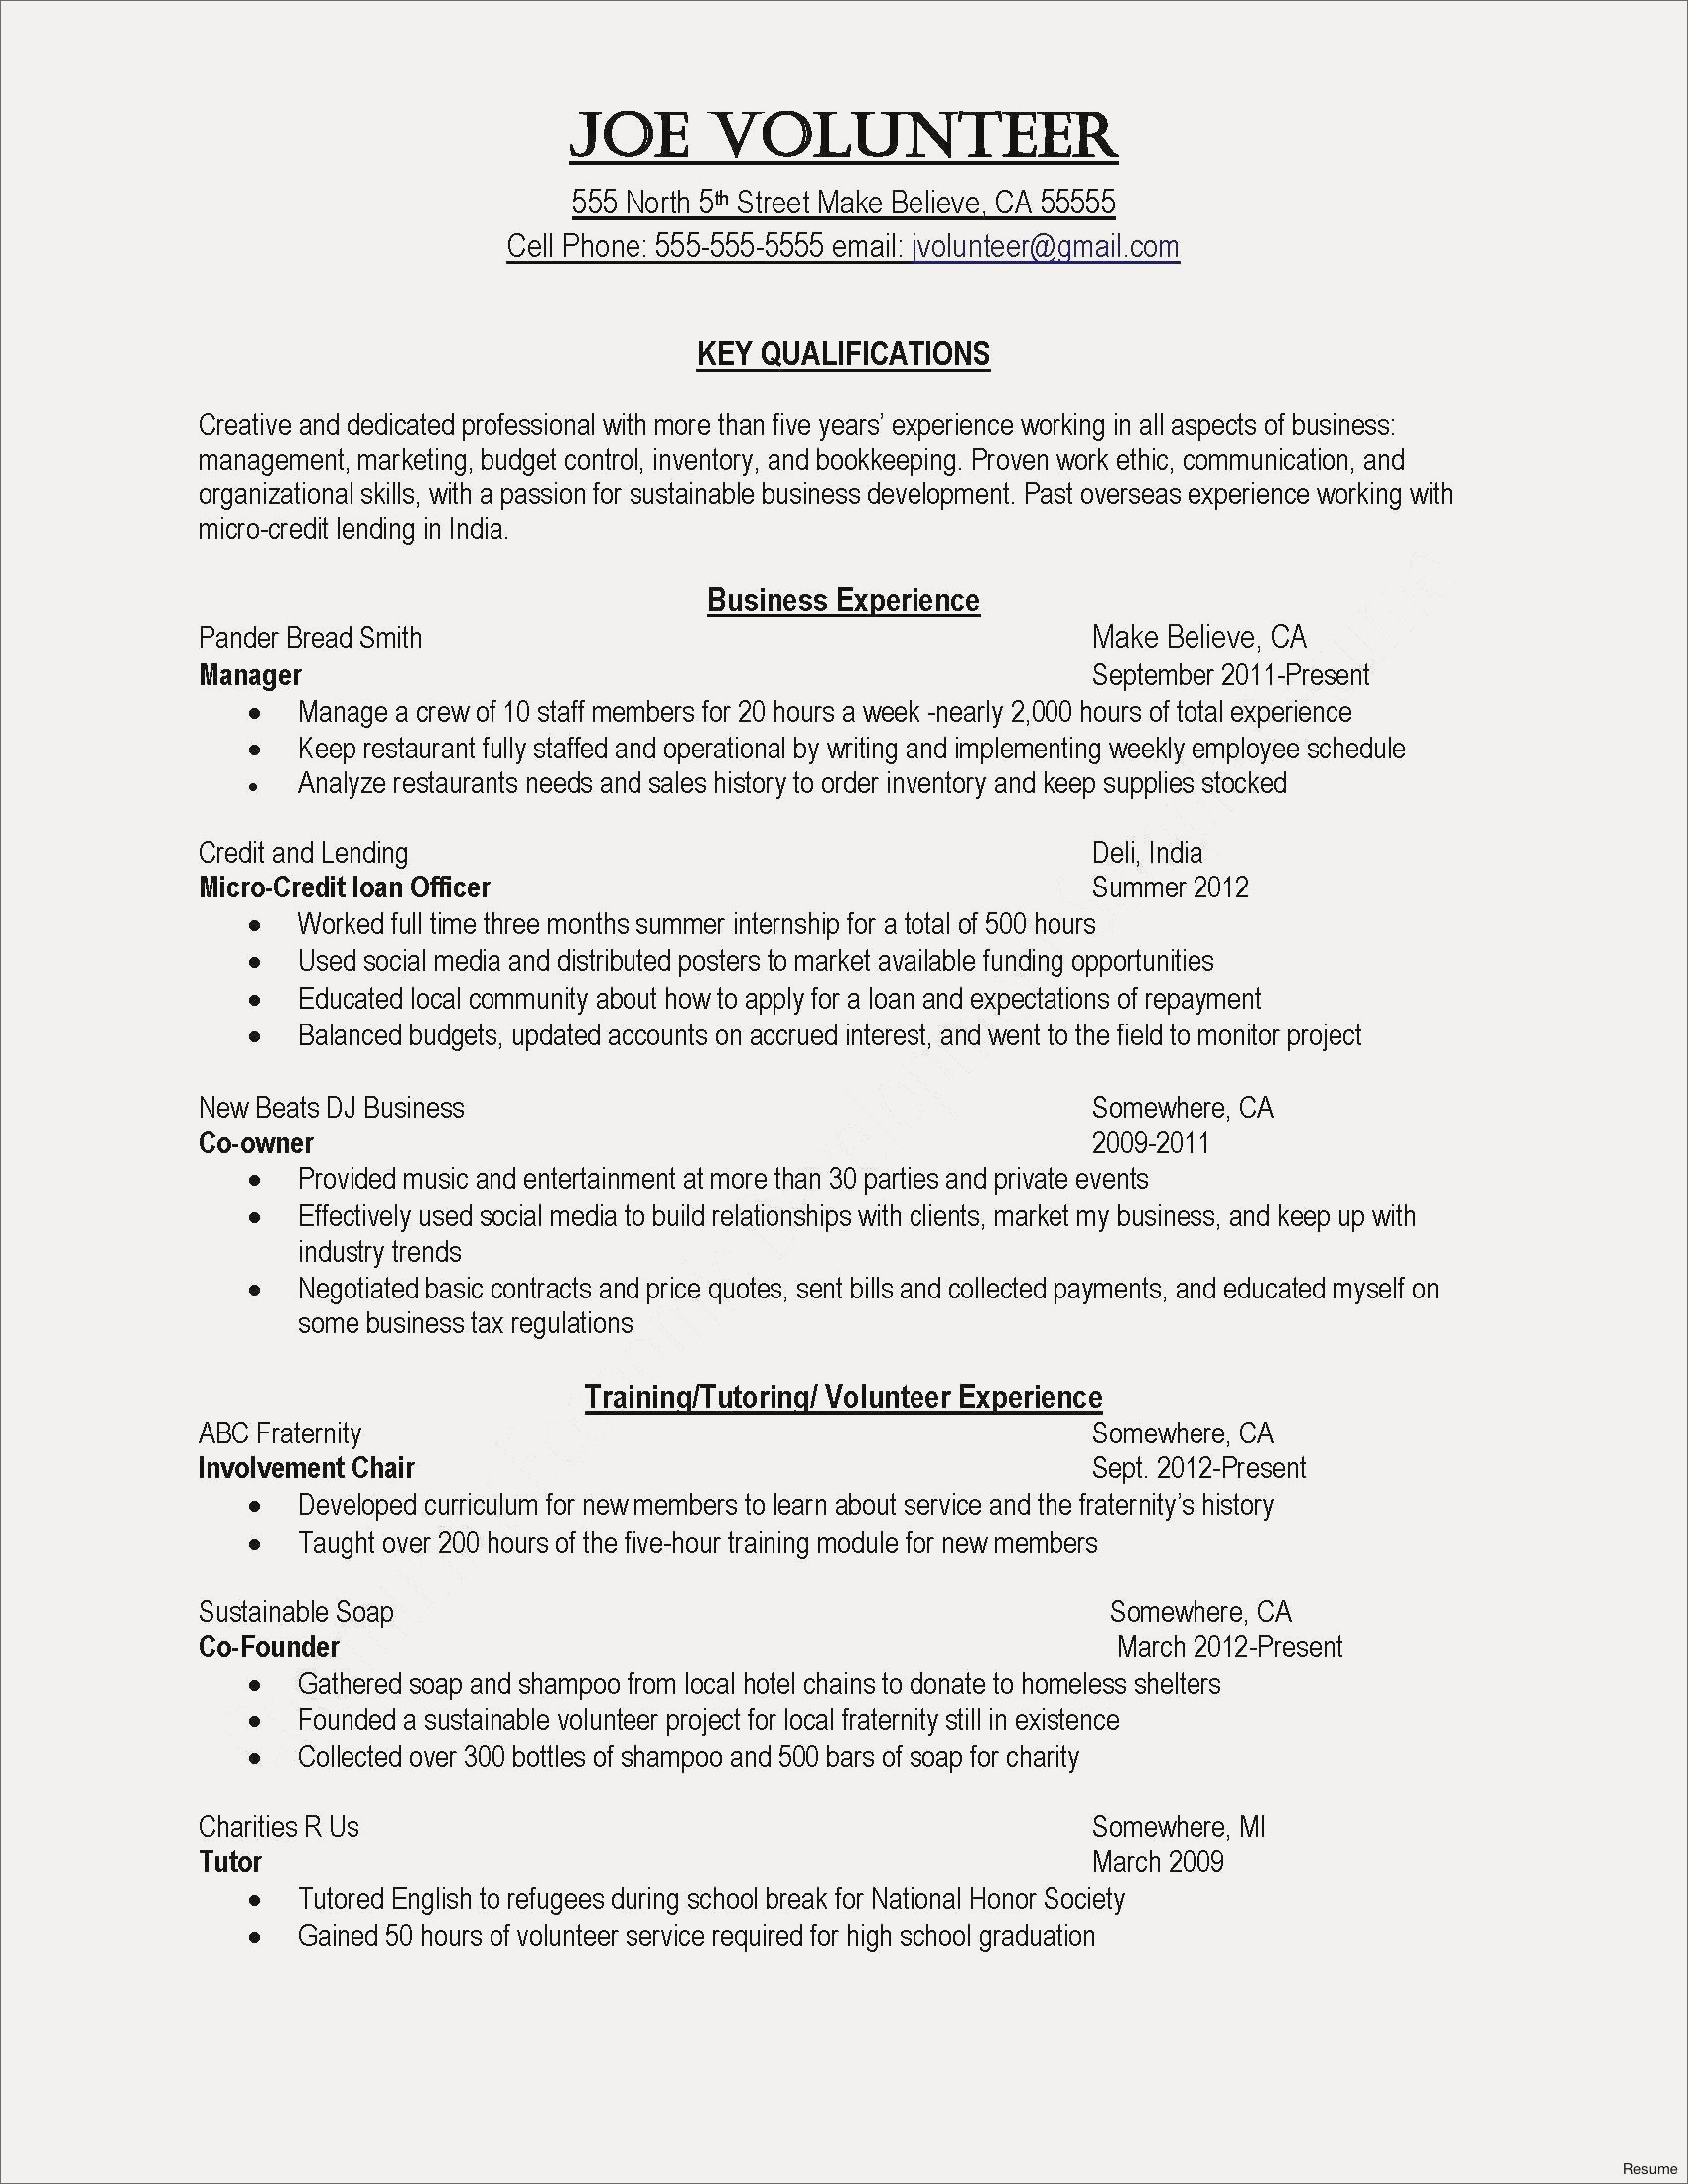 Perfect Resume format - Teenage Resume Template Refrence Best Resume for Highschool Students